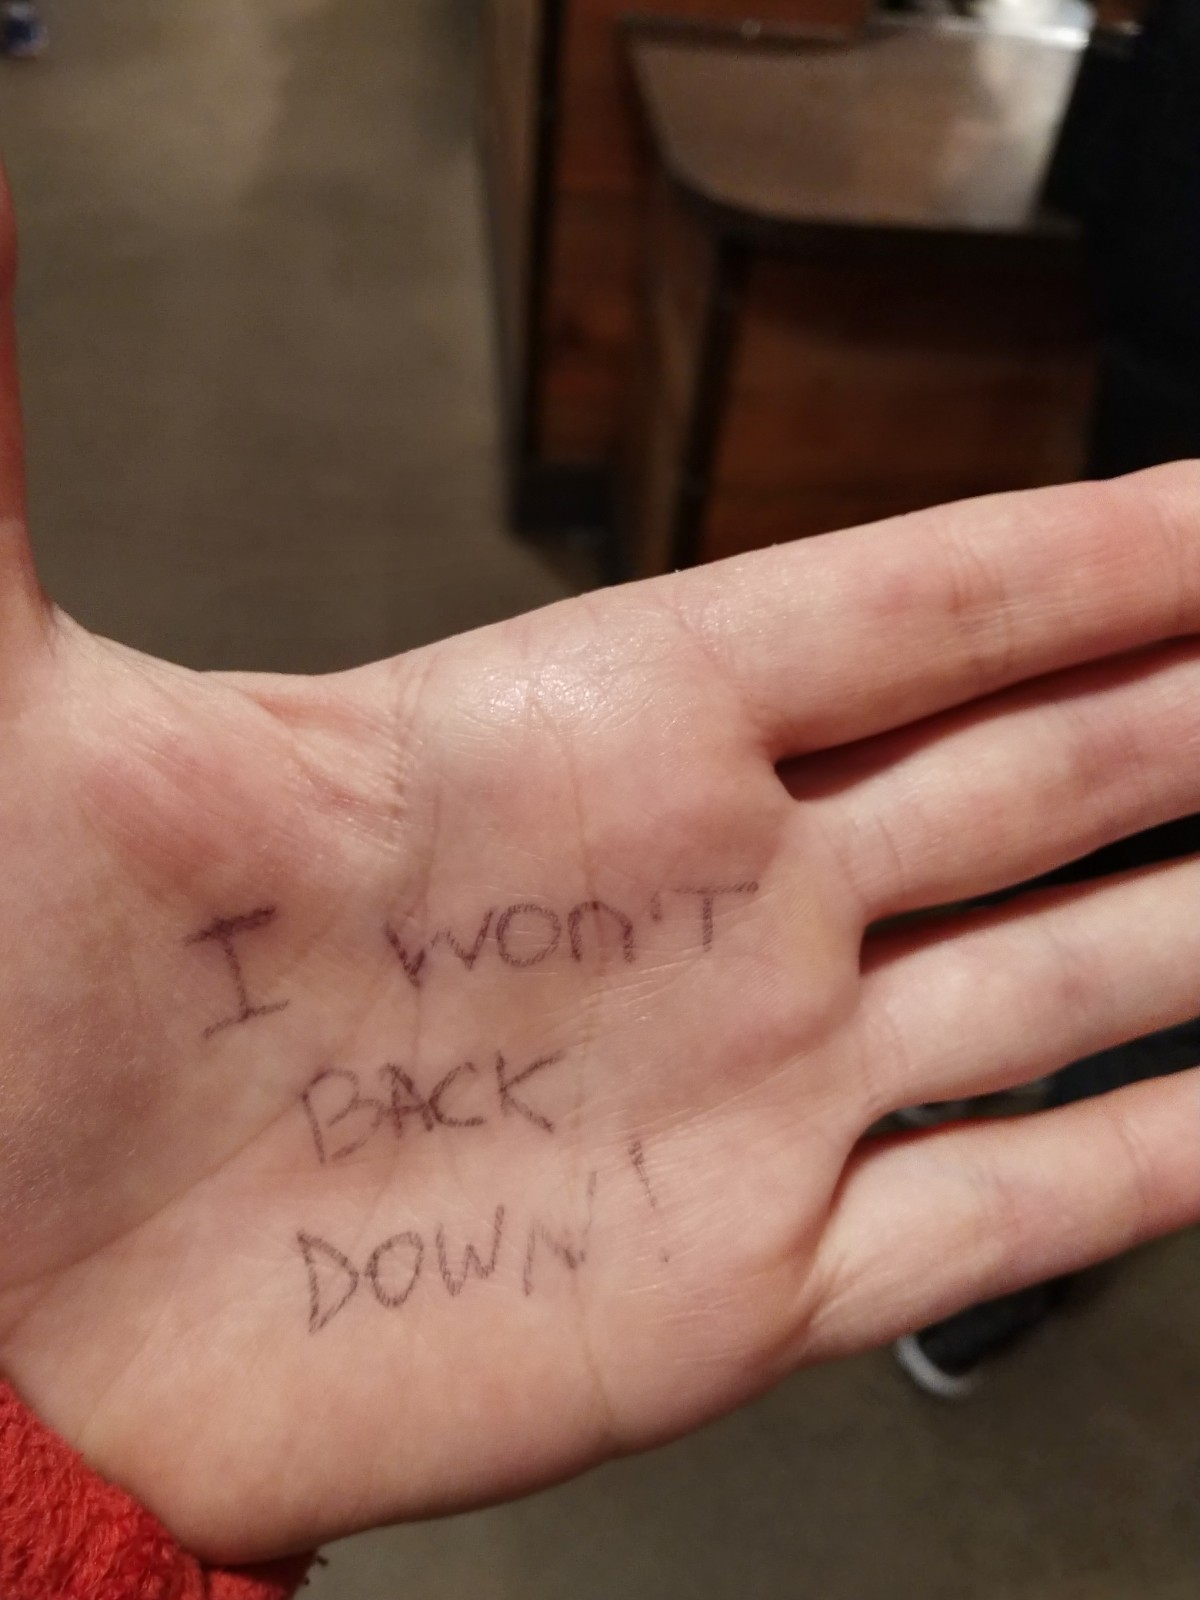 I wont back down - MY Marathon 2018